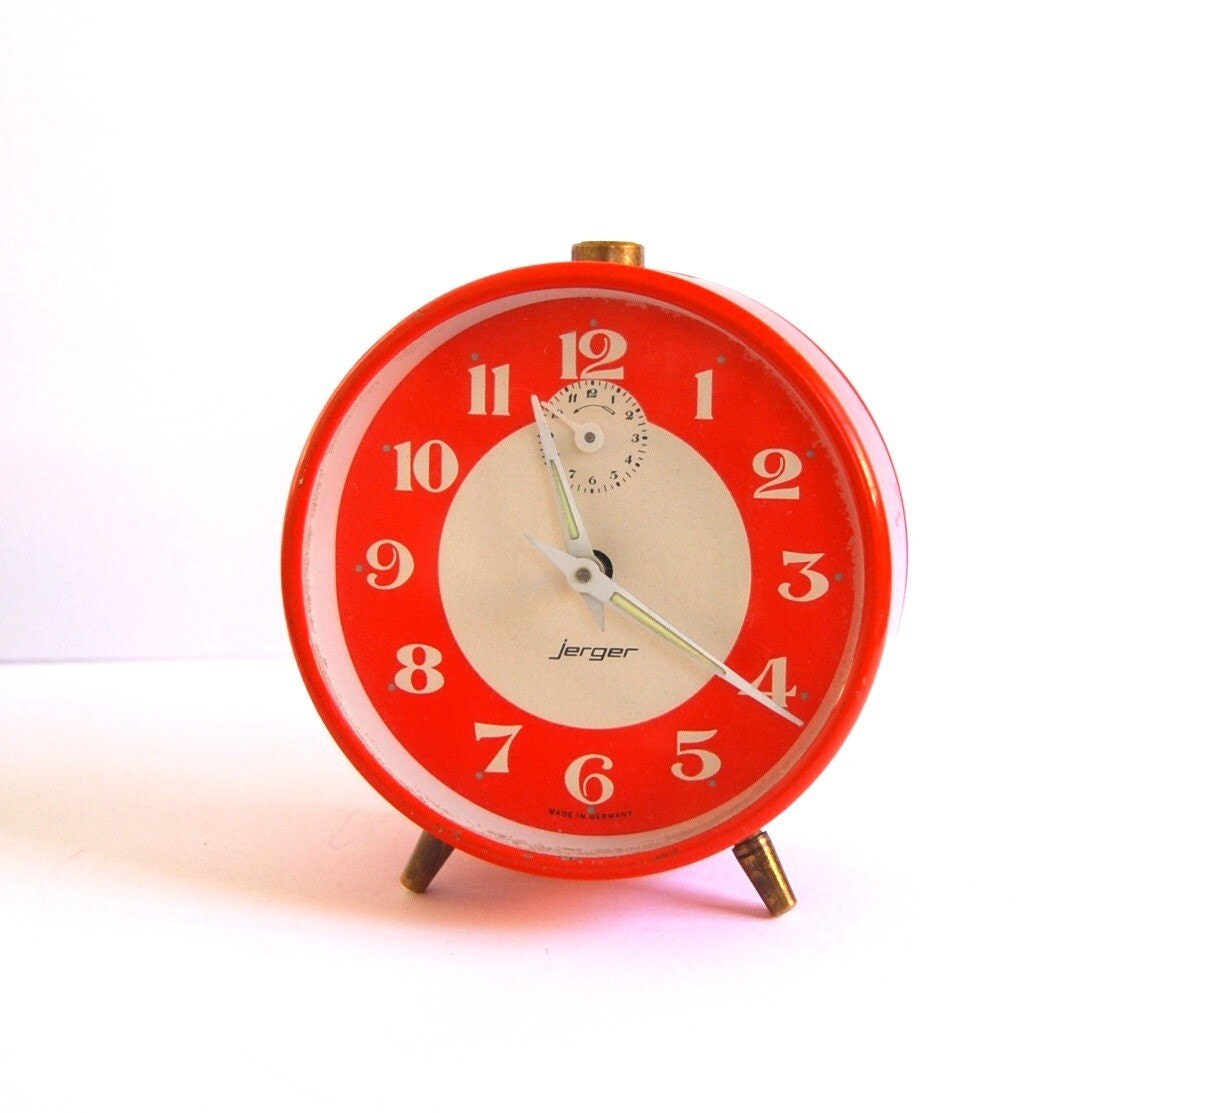 Vintage orange Jerger alarm clock made in Germany by spacejam from etsy.com